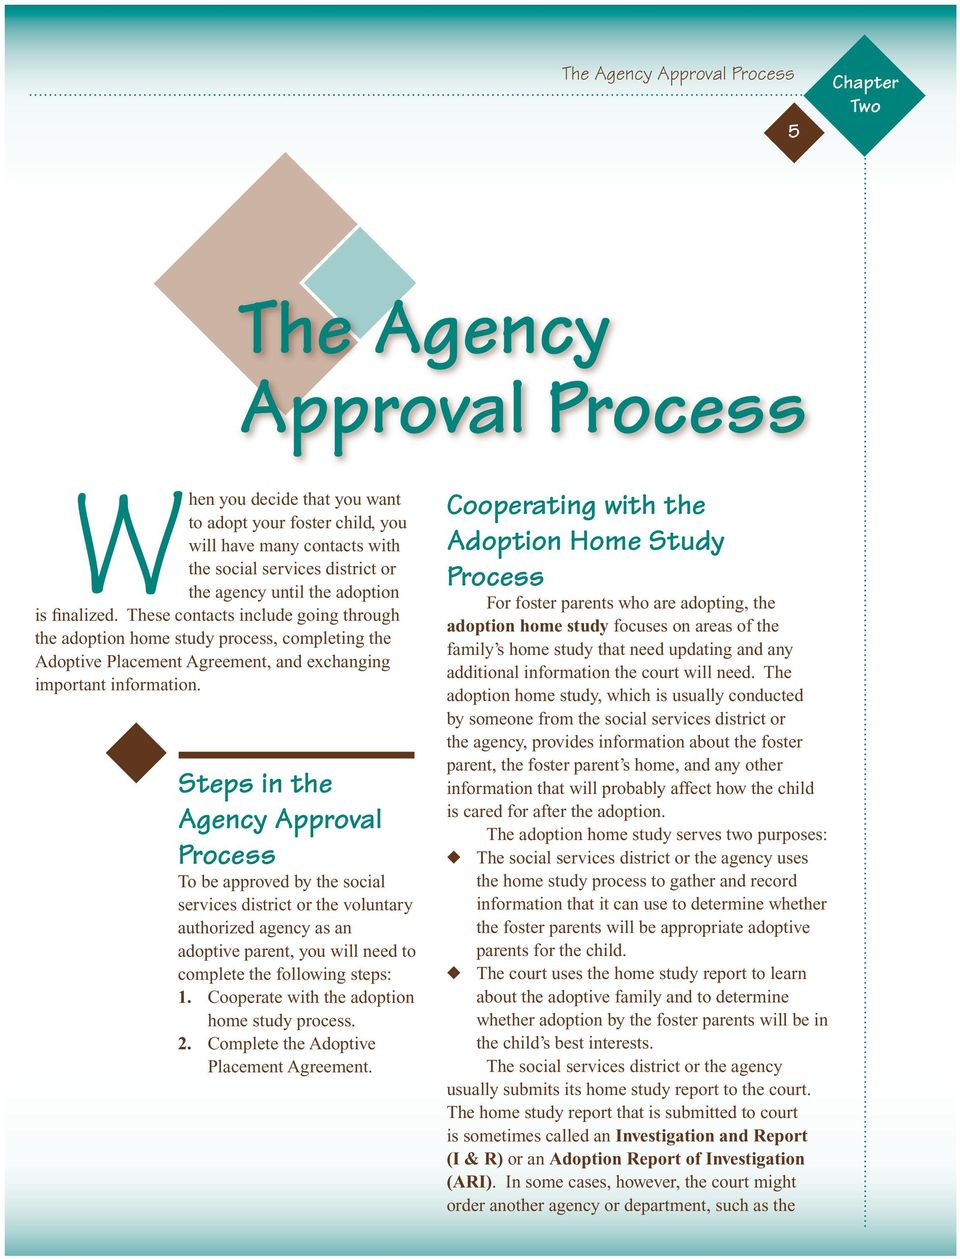 Steps in the Agency Approval Process To be approved by the social services district or the voluntary authorized agency as an adoptive parent, you will need to complete the following steps: 1.